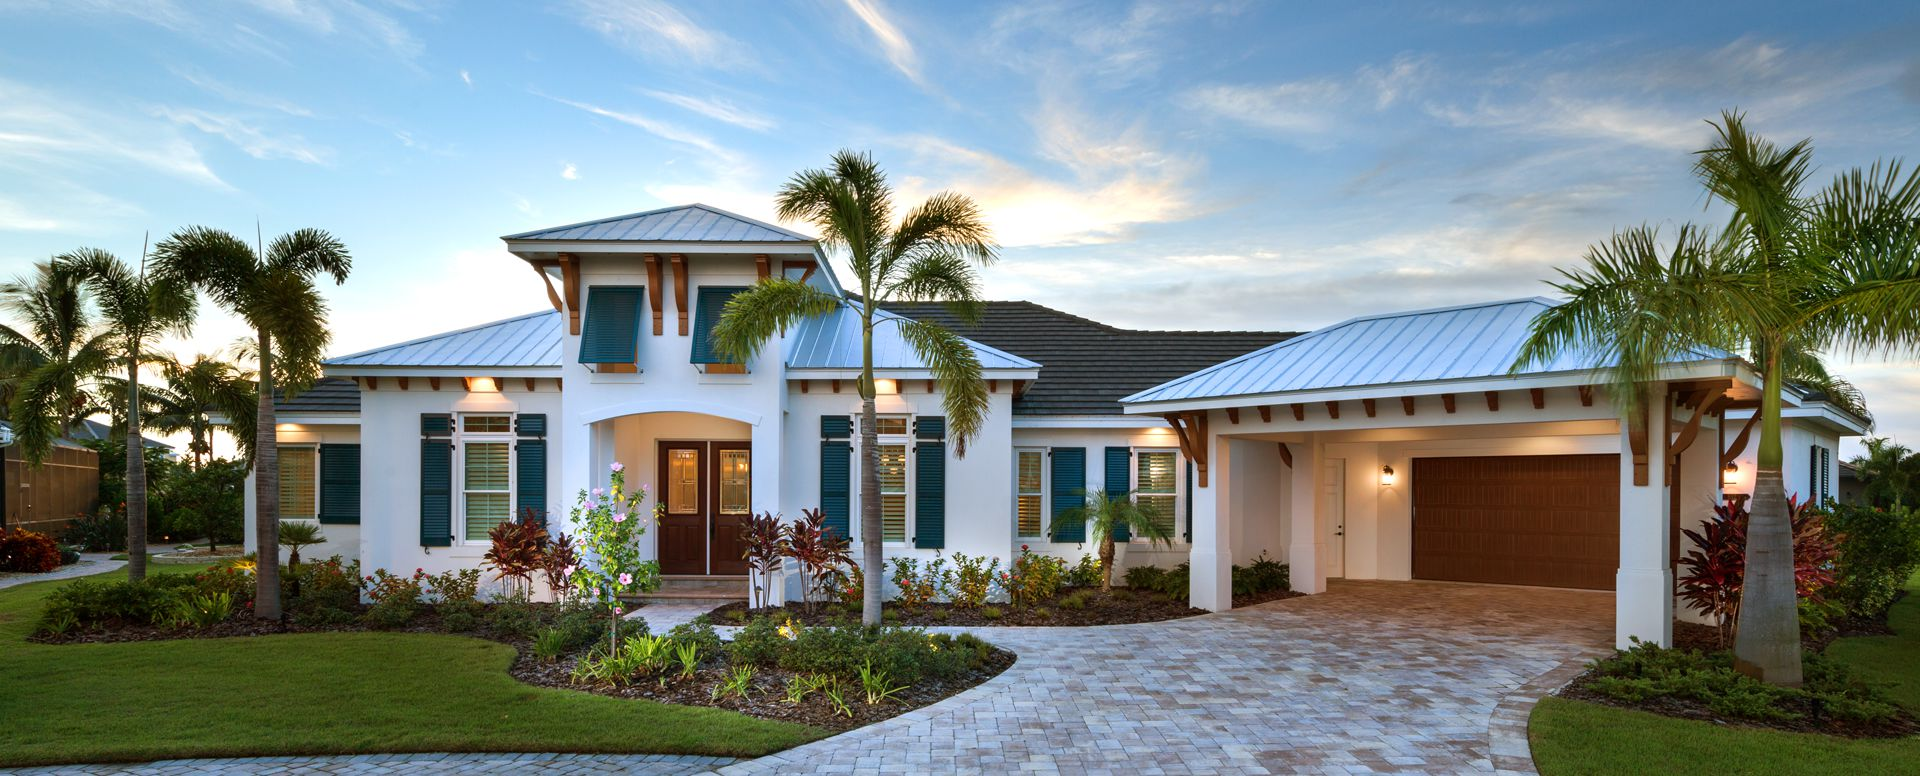 West Indies Interior Decorating Style Florida Style Home 22 Best Of Florida Cracker Style Home